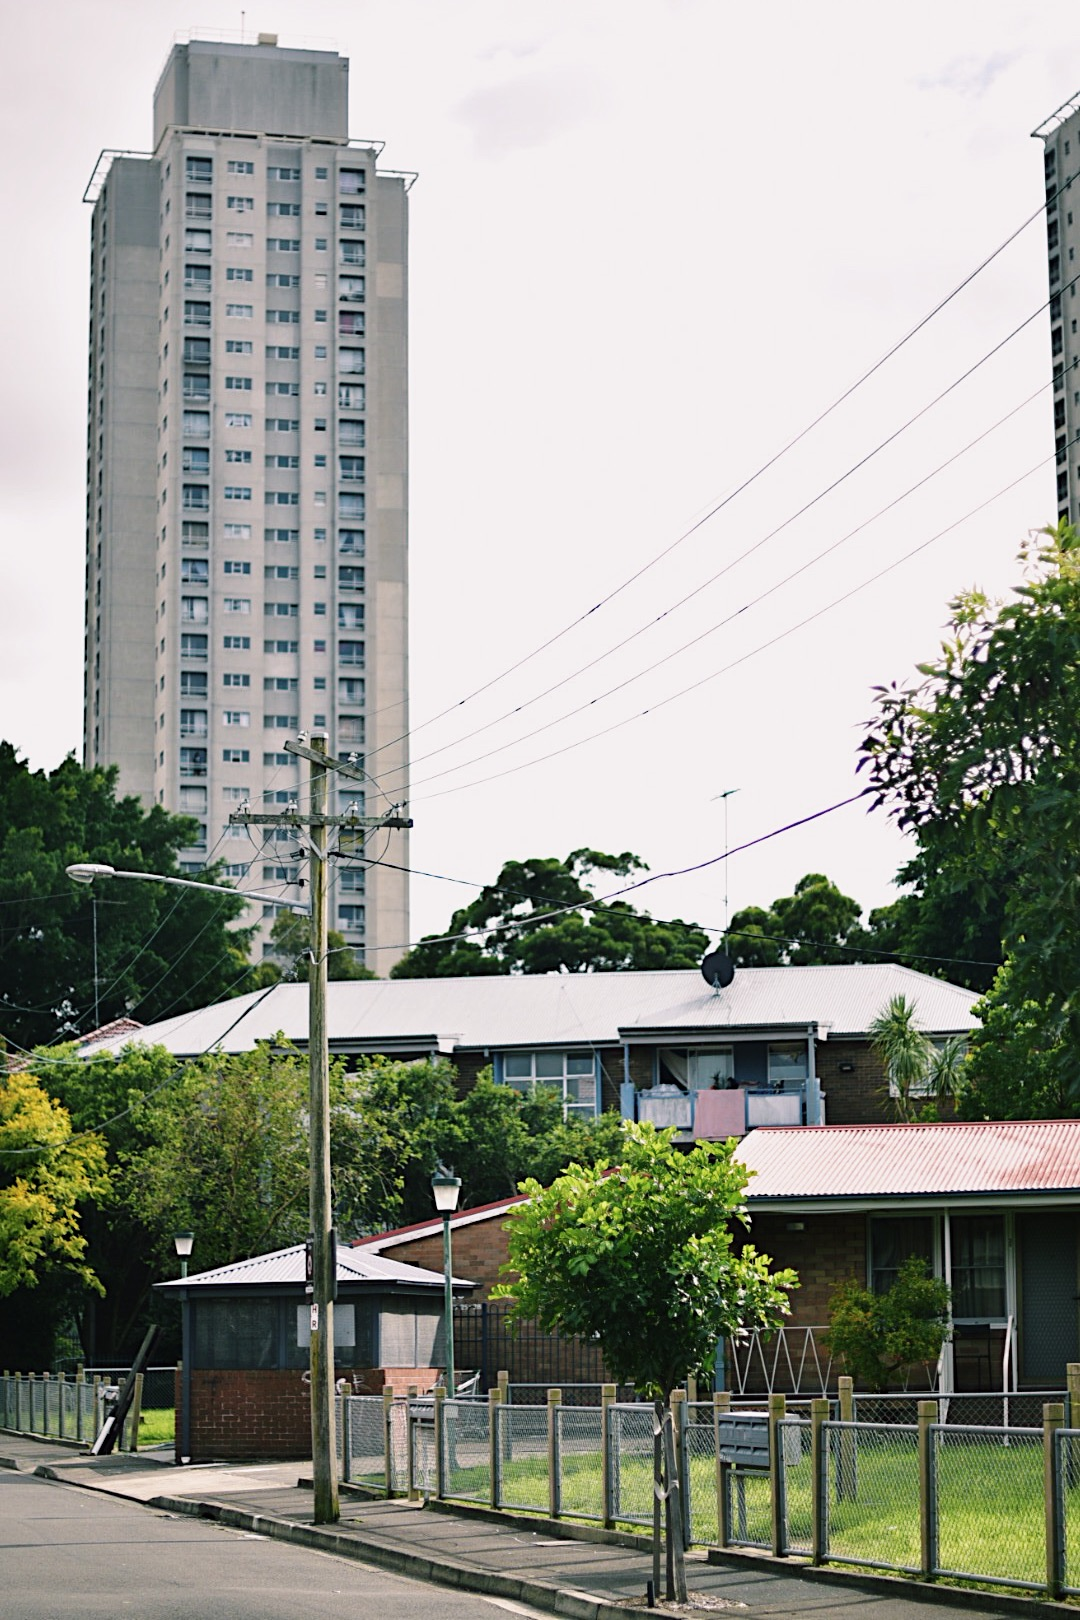 The surrounding neighbourhood of Waterloo is one of Sydney's most demographically diverse.